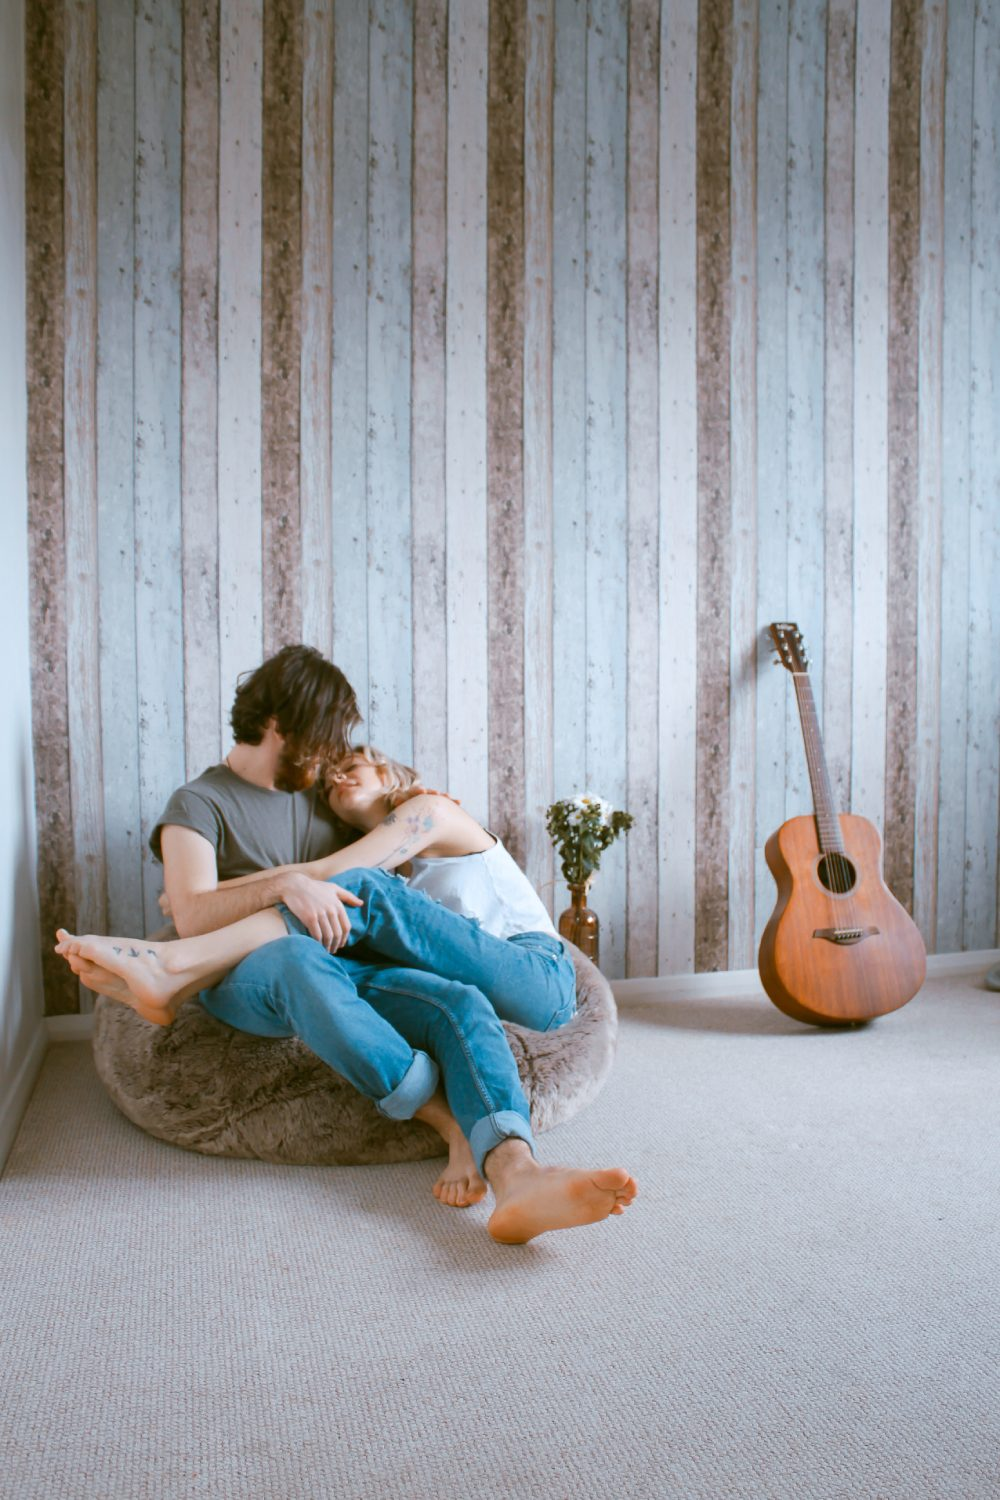 at home date night ideas featured image